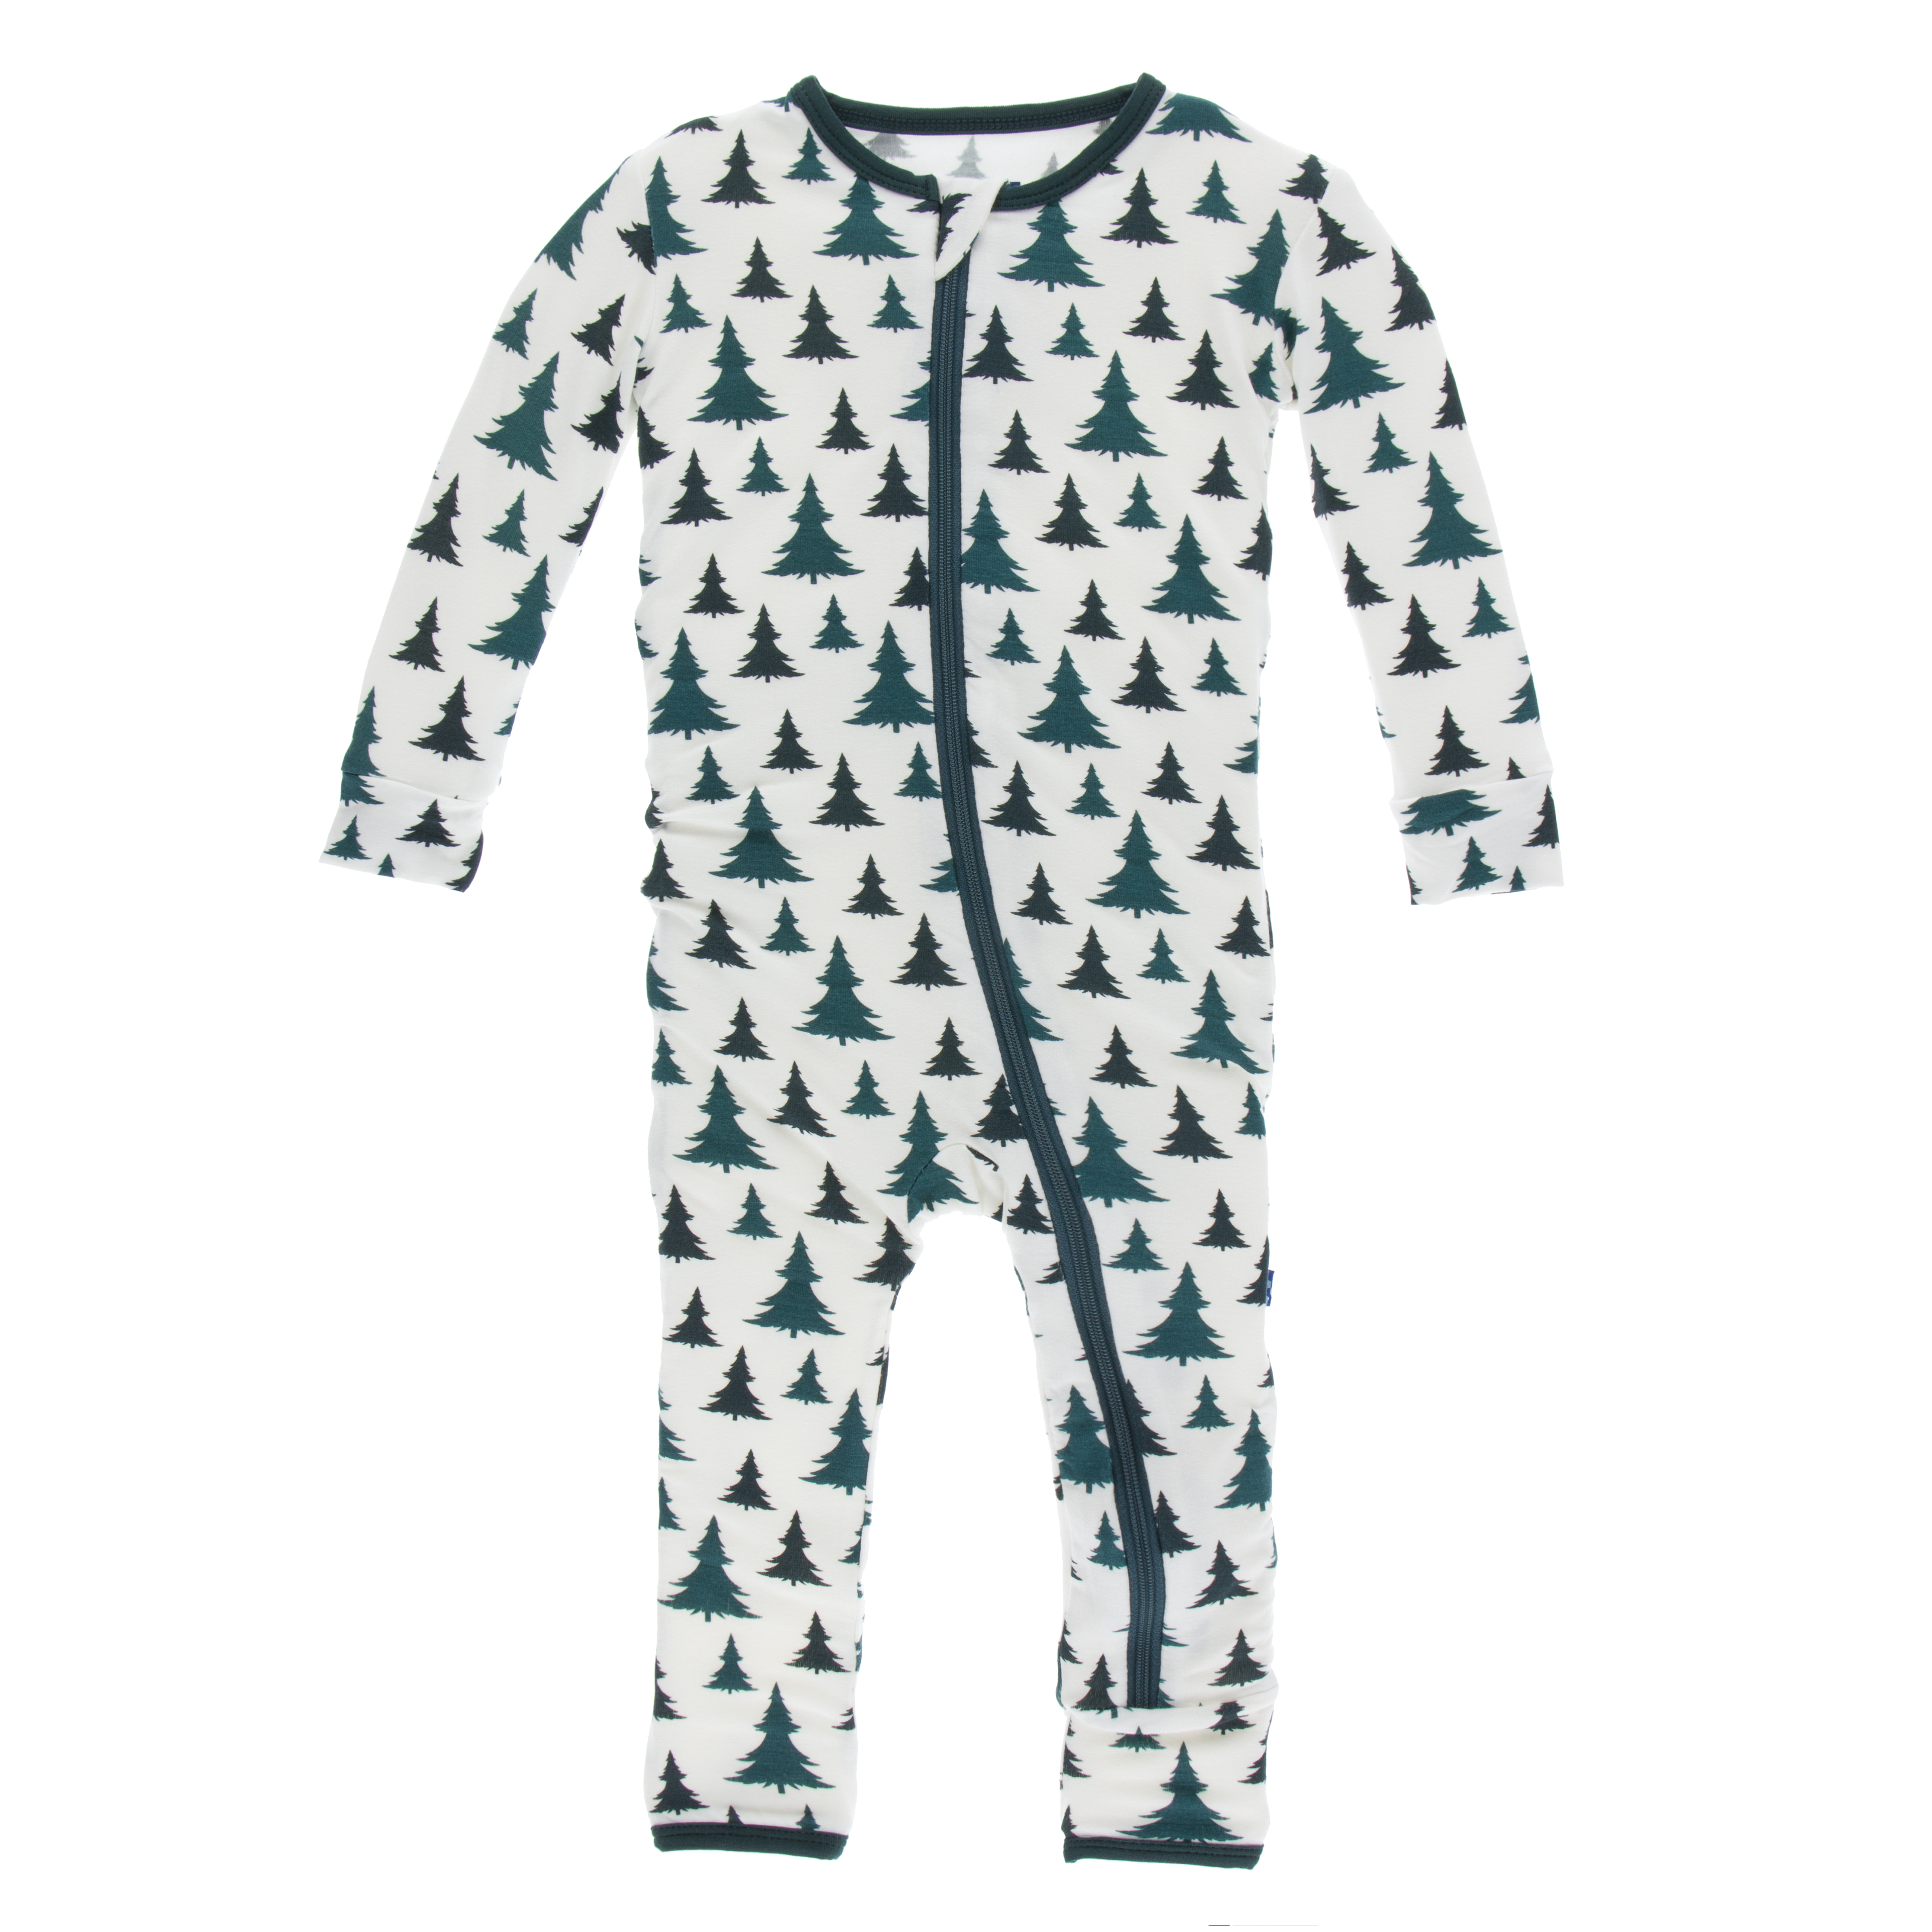 Useful Kickee Pants Natural Christmas Tree Muffin Ruffle Footie With Zipper New 2t Baby & Toddler Clothing Girls' Clothing (newborn-5t)